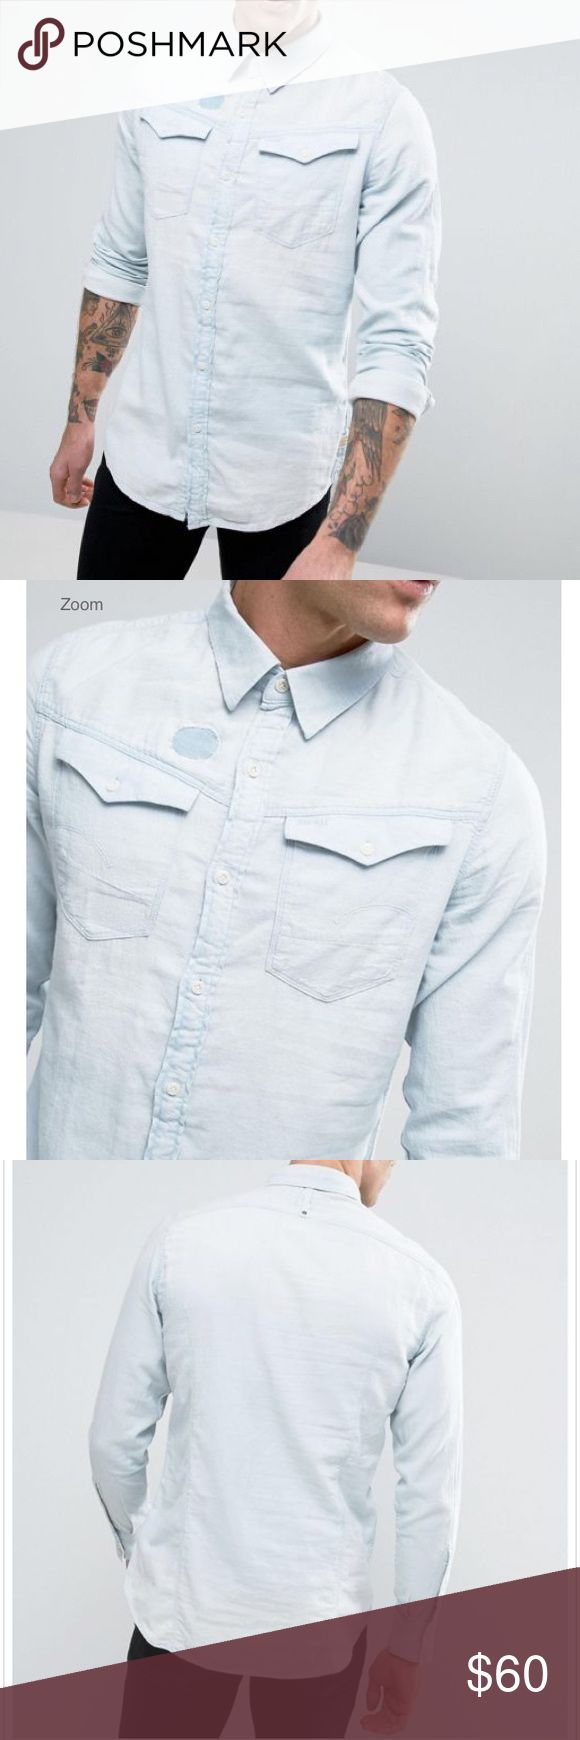 G Star Raw Men Slim Fit Denim Chambray Button Down G-STAR RAW  (New with tags $159)   • SOLD OUT Online - Rare!   • Men's Small - slim fit - true to size   • 100% cotton   • Chambray / denim shirt with worn in look and detailing   • Soft touch denim, light wash, point collar, button placket  • Approximate Measurements per website - 36 2/8 Chest 30 6/8 Waist 36 2/8 Hip 34 1/8 Arm Length G Star Raw Shirts Casual Button Down Shirts